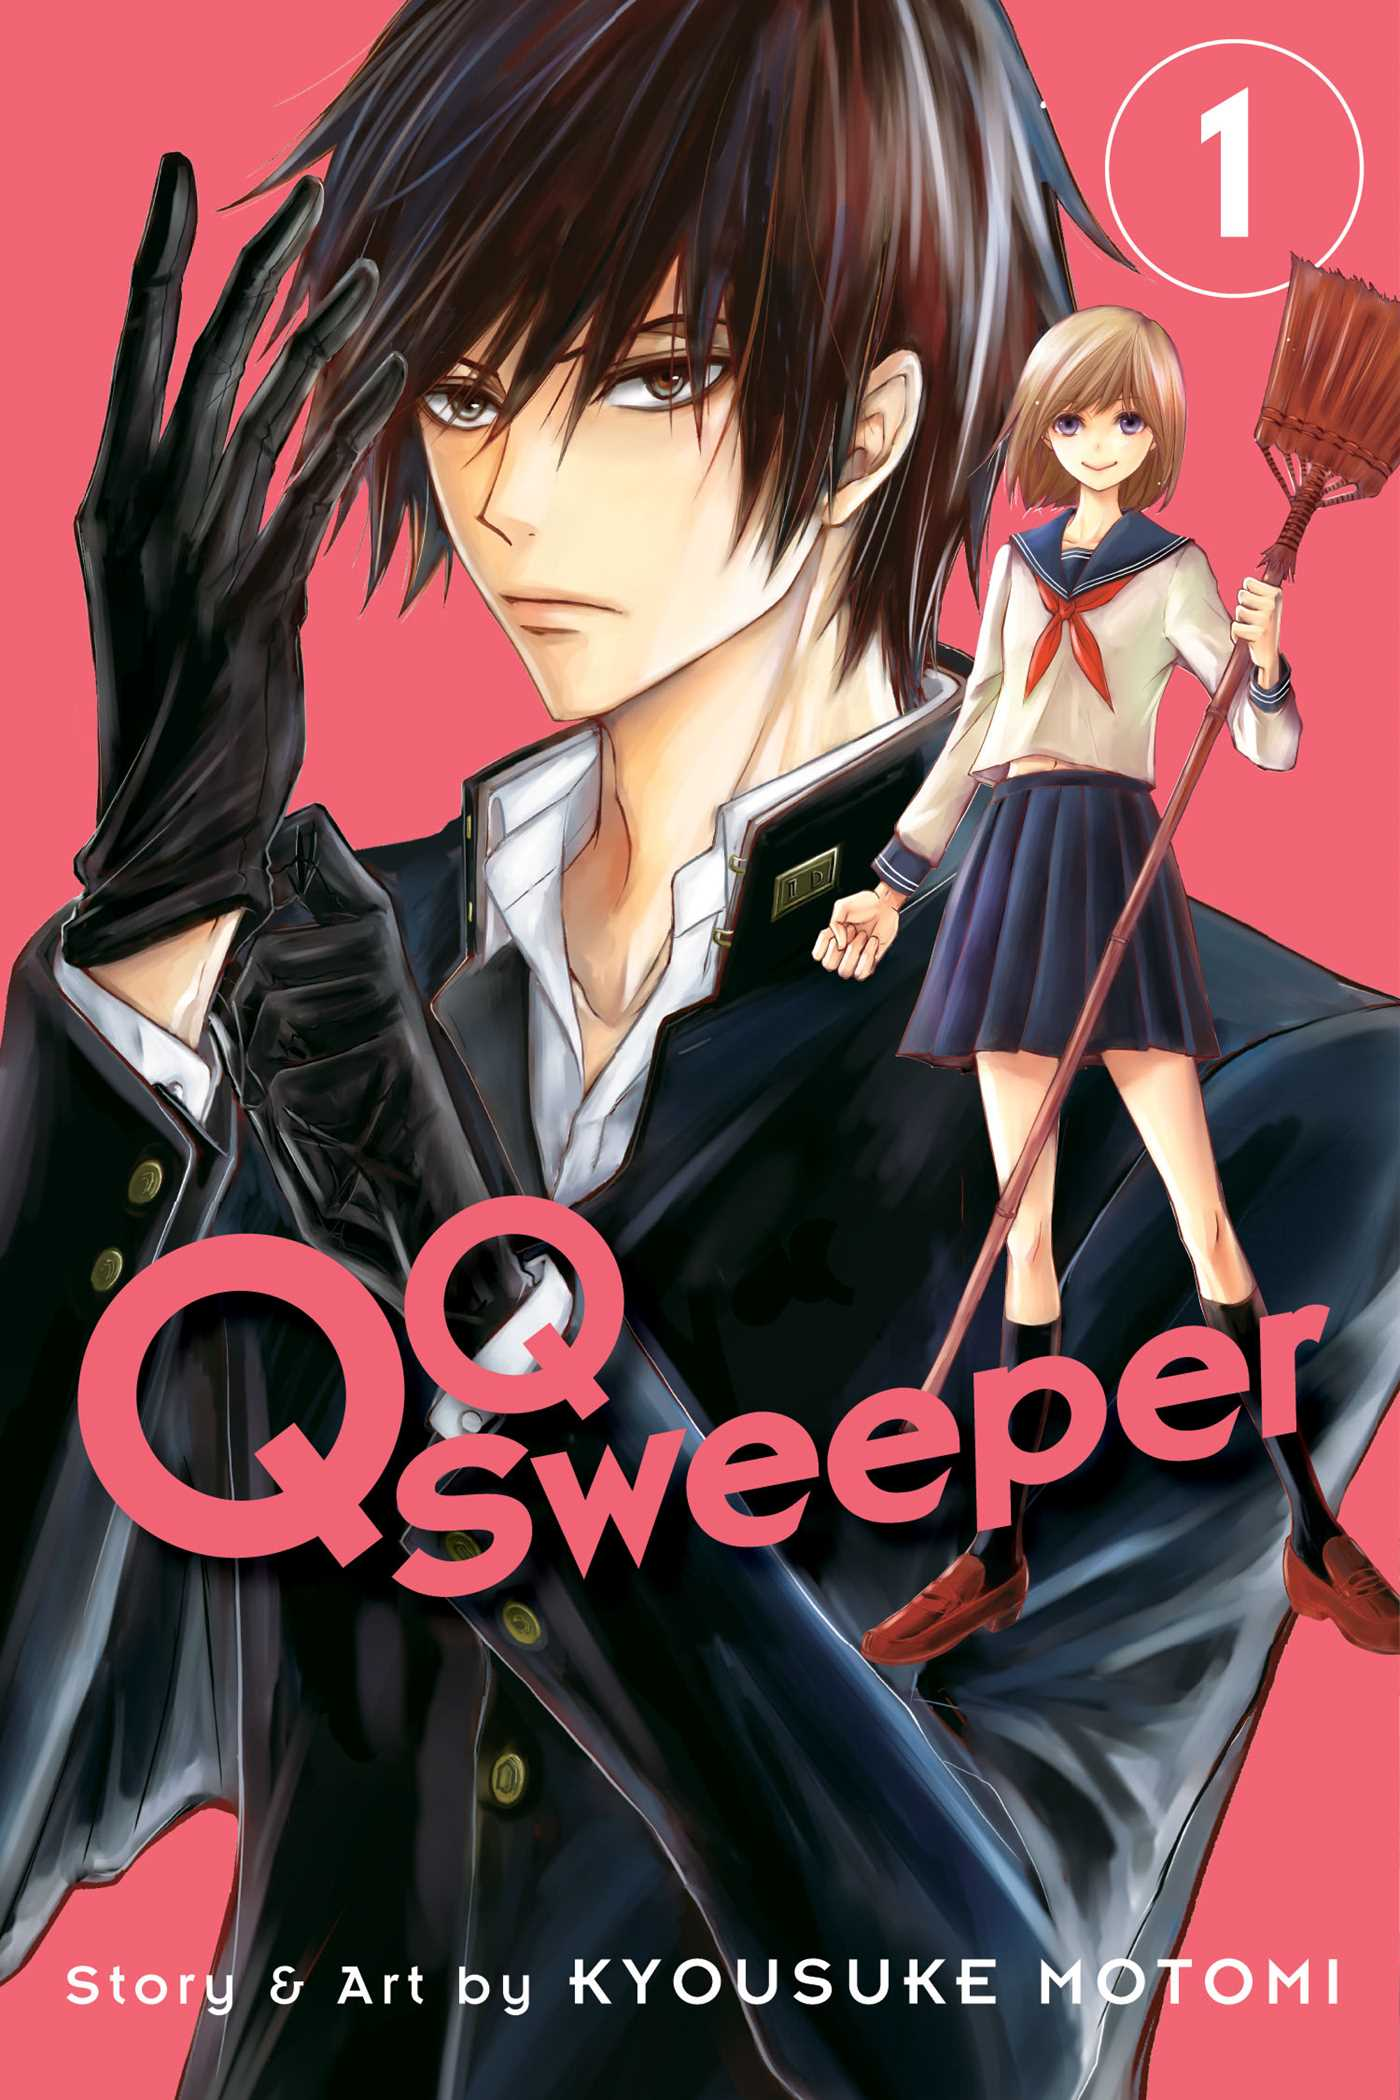 QQ Sweeper, Vol  1 | Book by Kyousuke Motomi | Official